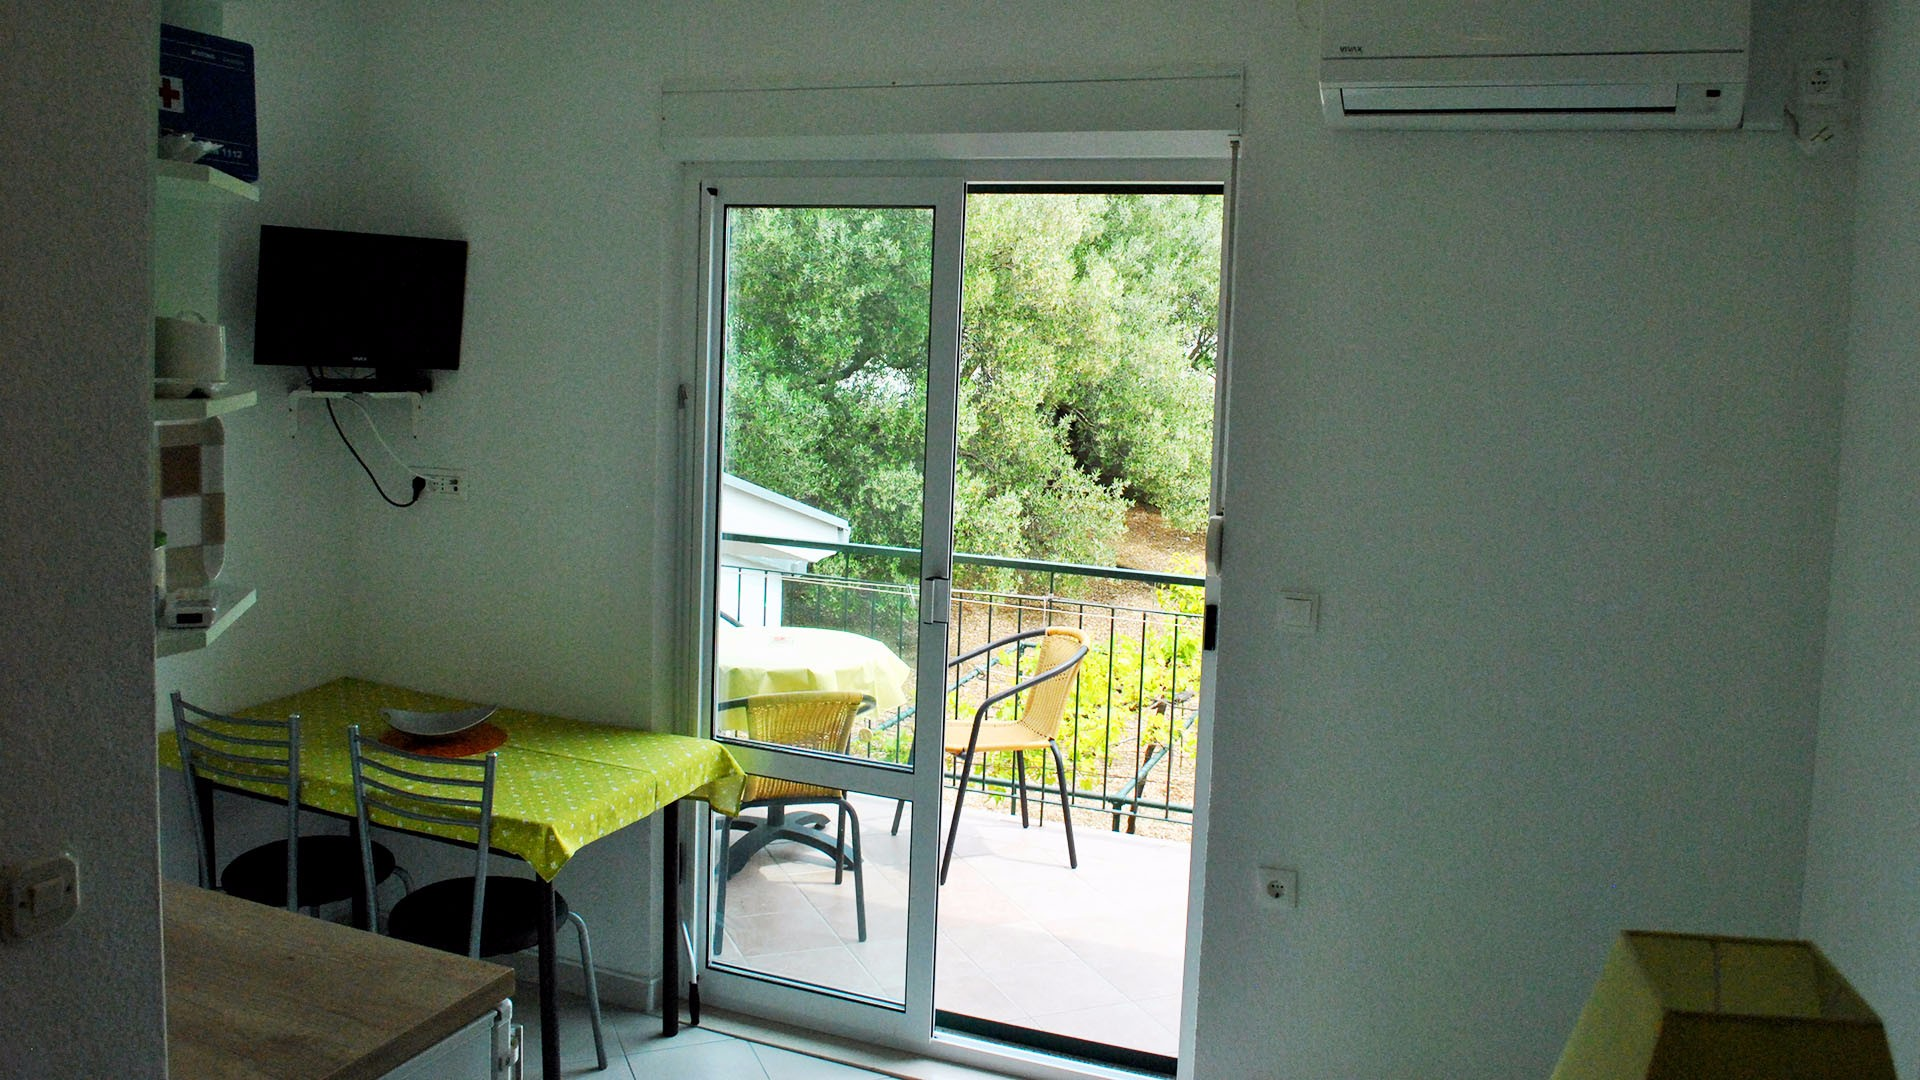 ApartmentA6 balcony